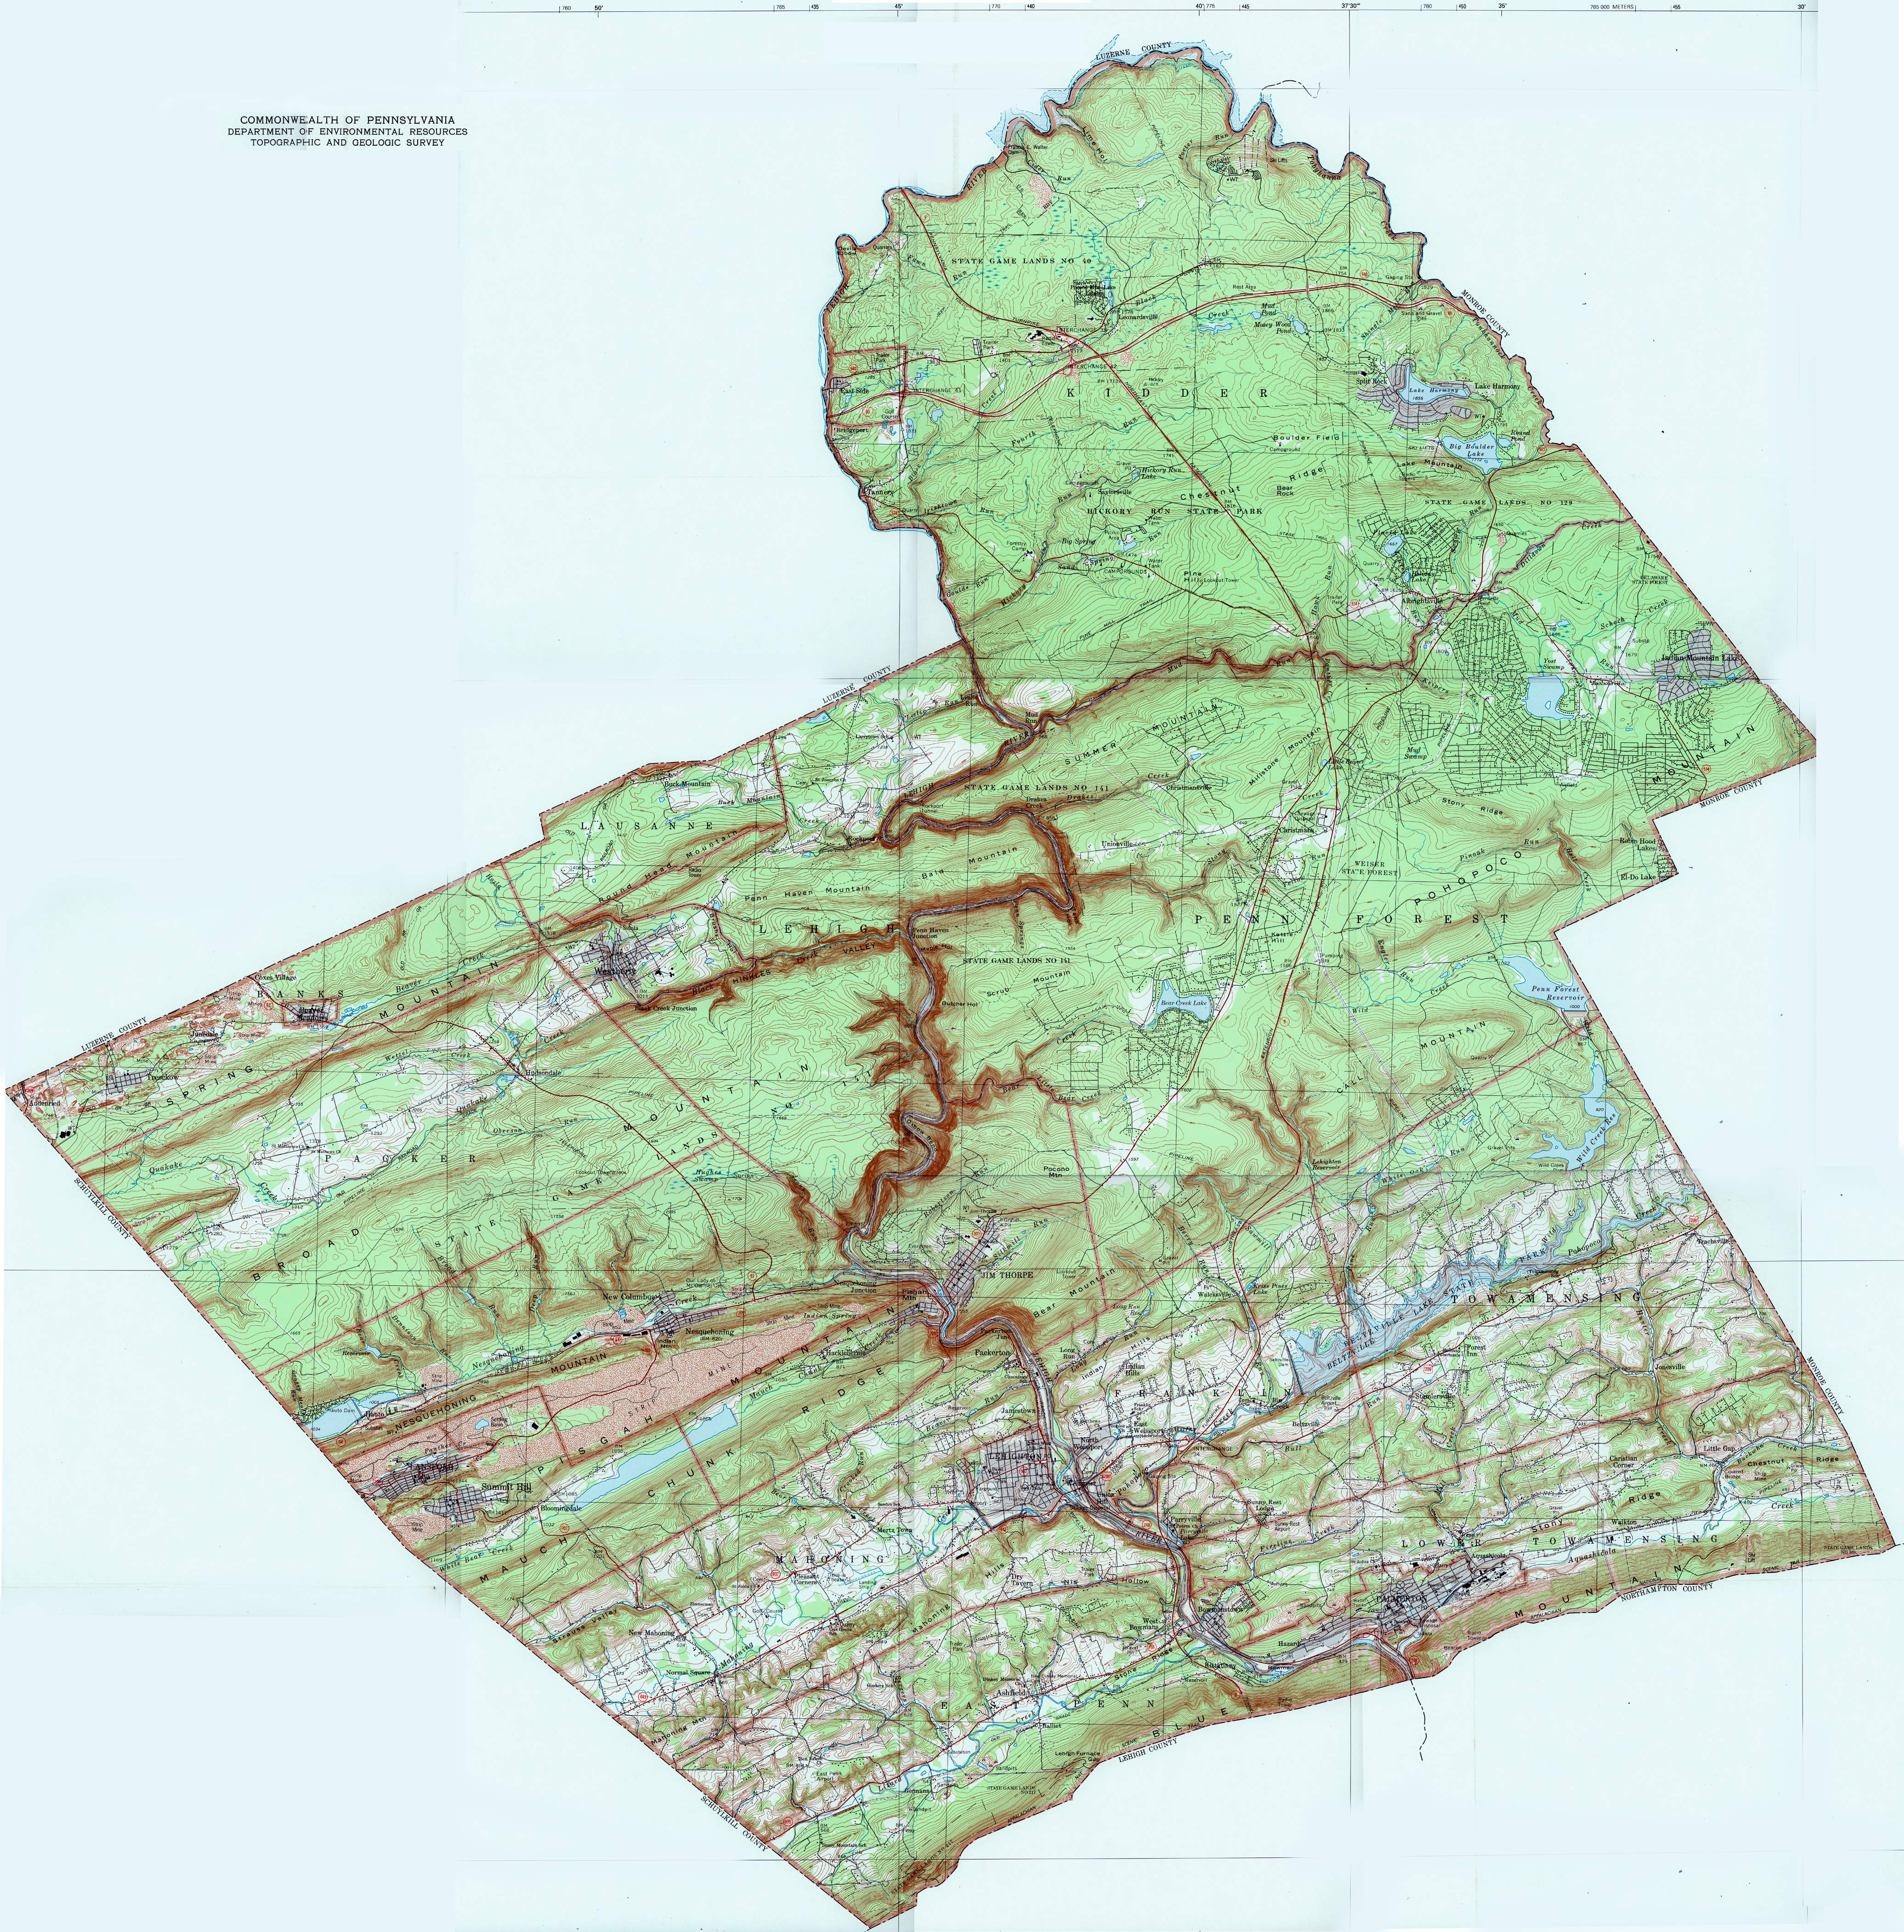 To see the consolidated USGS map of